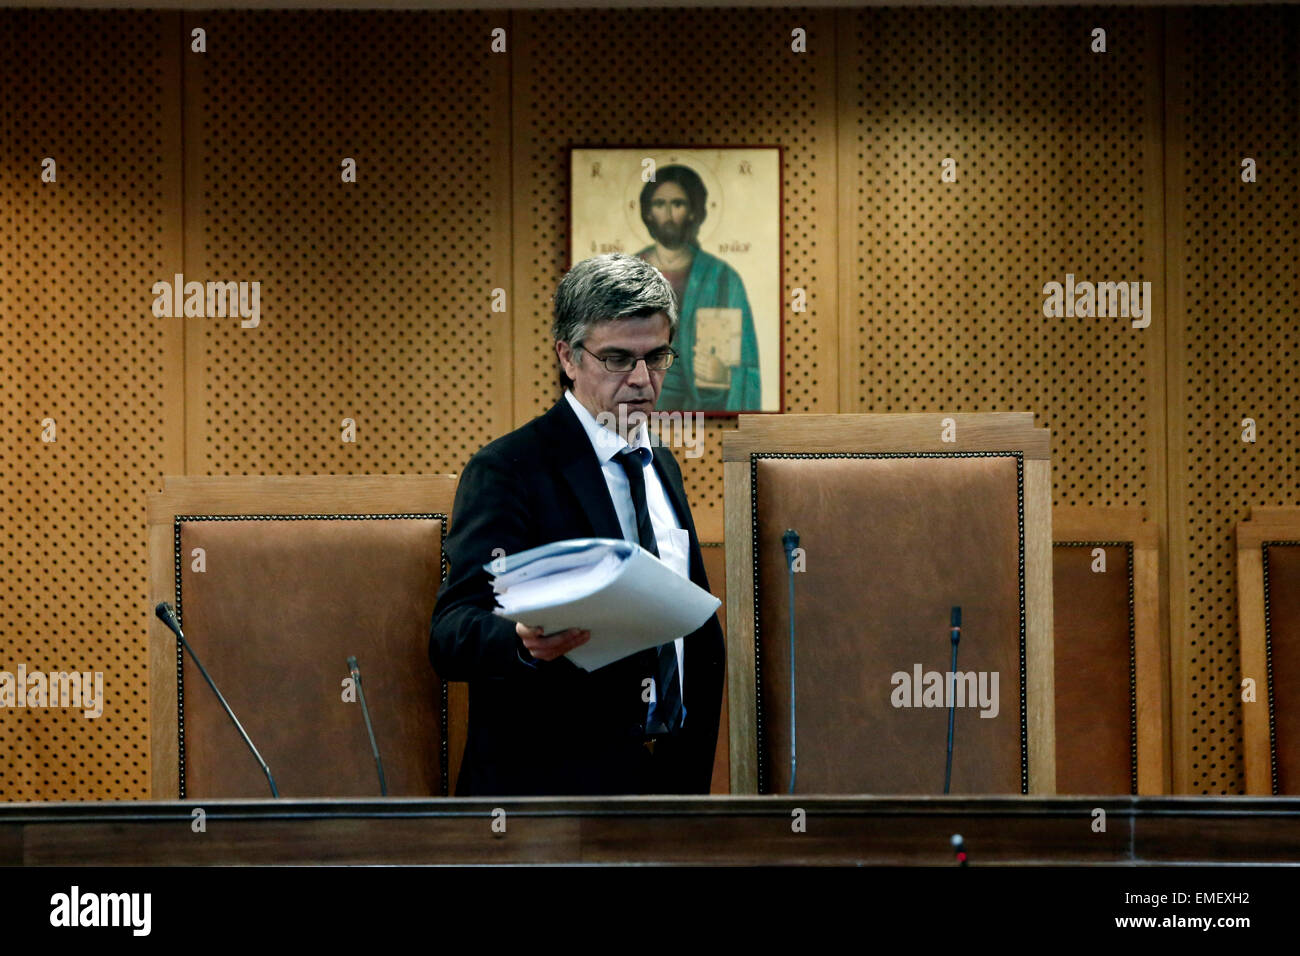 Athens, Greece. 20th Apr, 2015. A court clerk is seen in the courtroom at the opening of the trial of 69 members - Stock Image